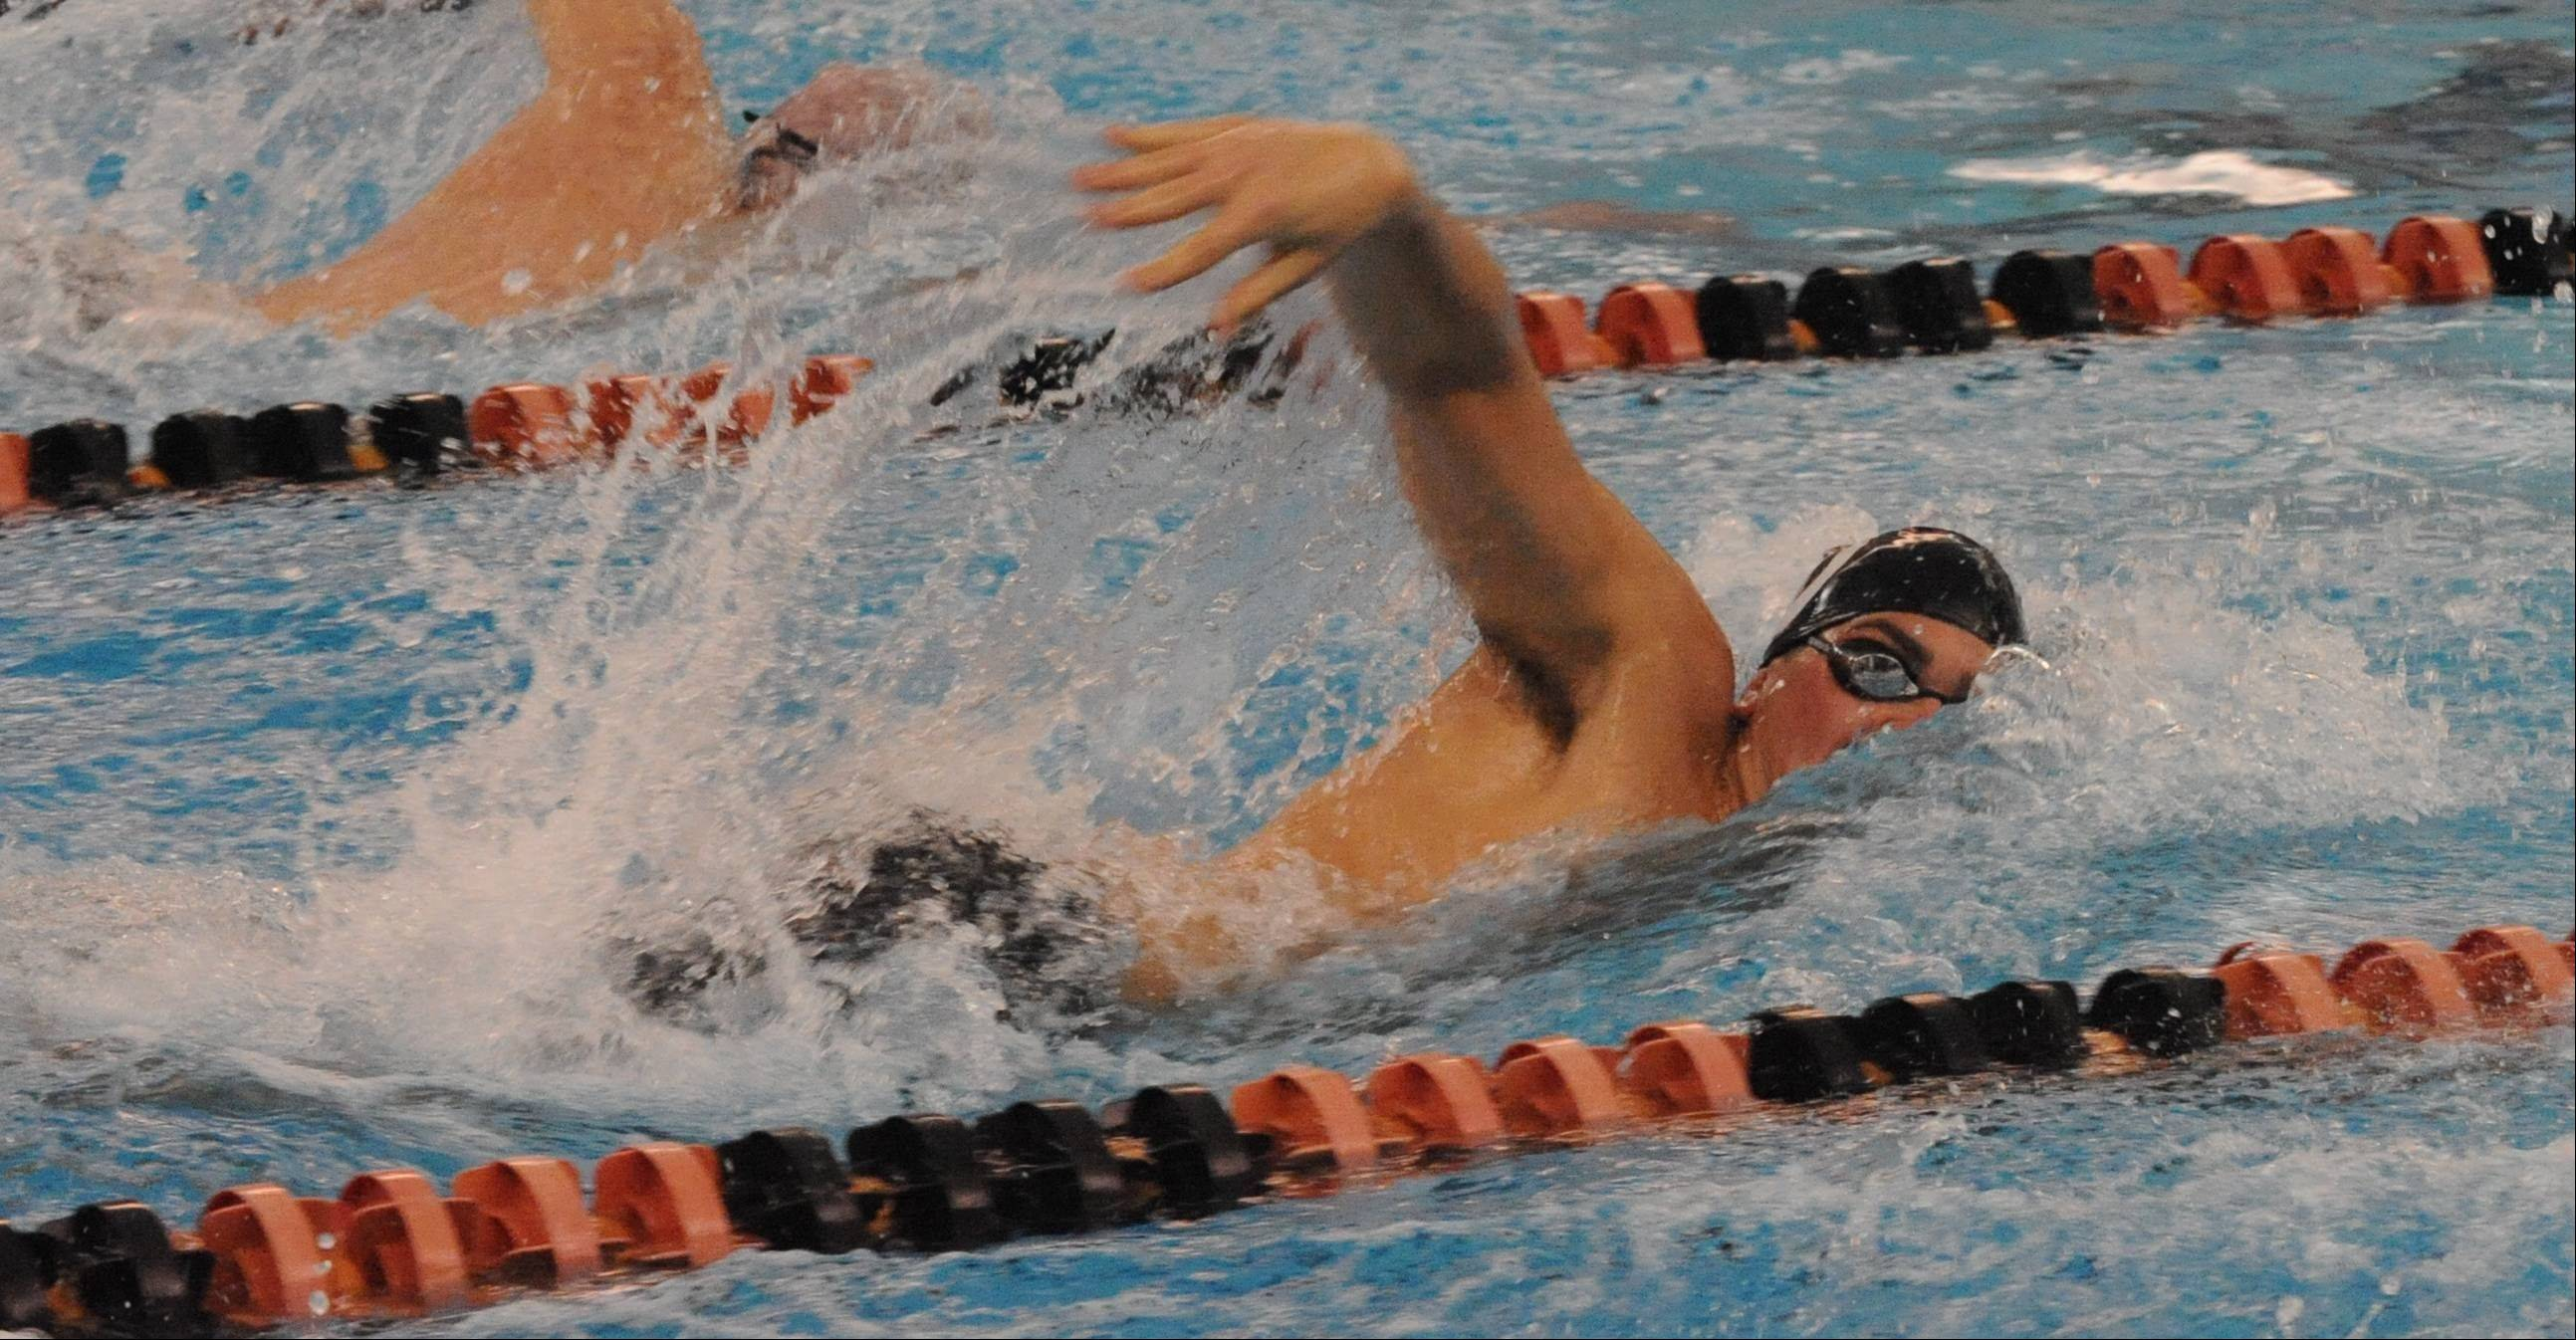 If everything goes well for Barrington senior Jack Strauss, he could score in four events at this weekend's boys swimming state meet at New Trier.